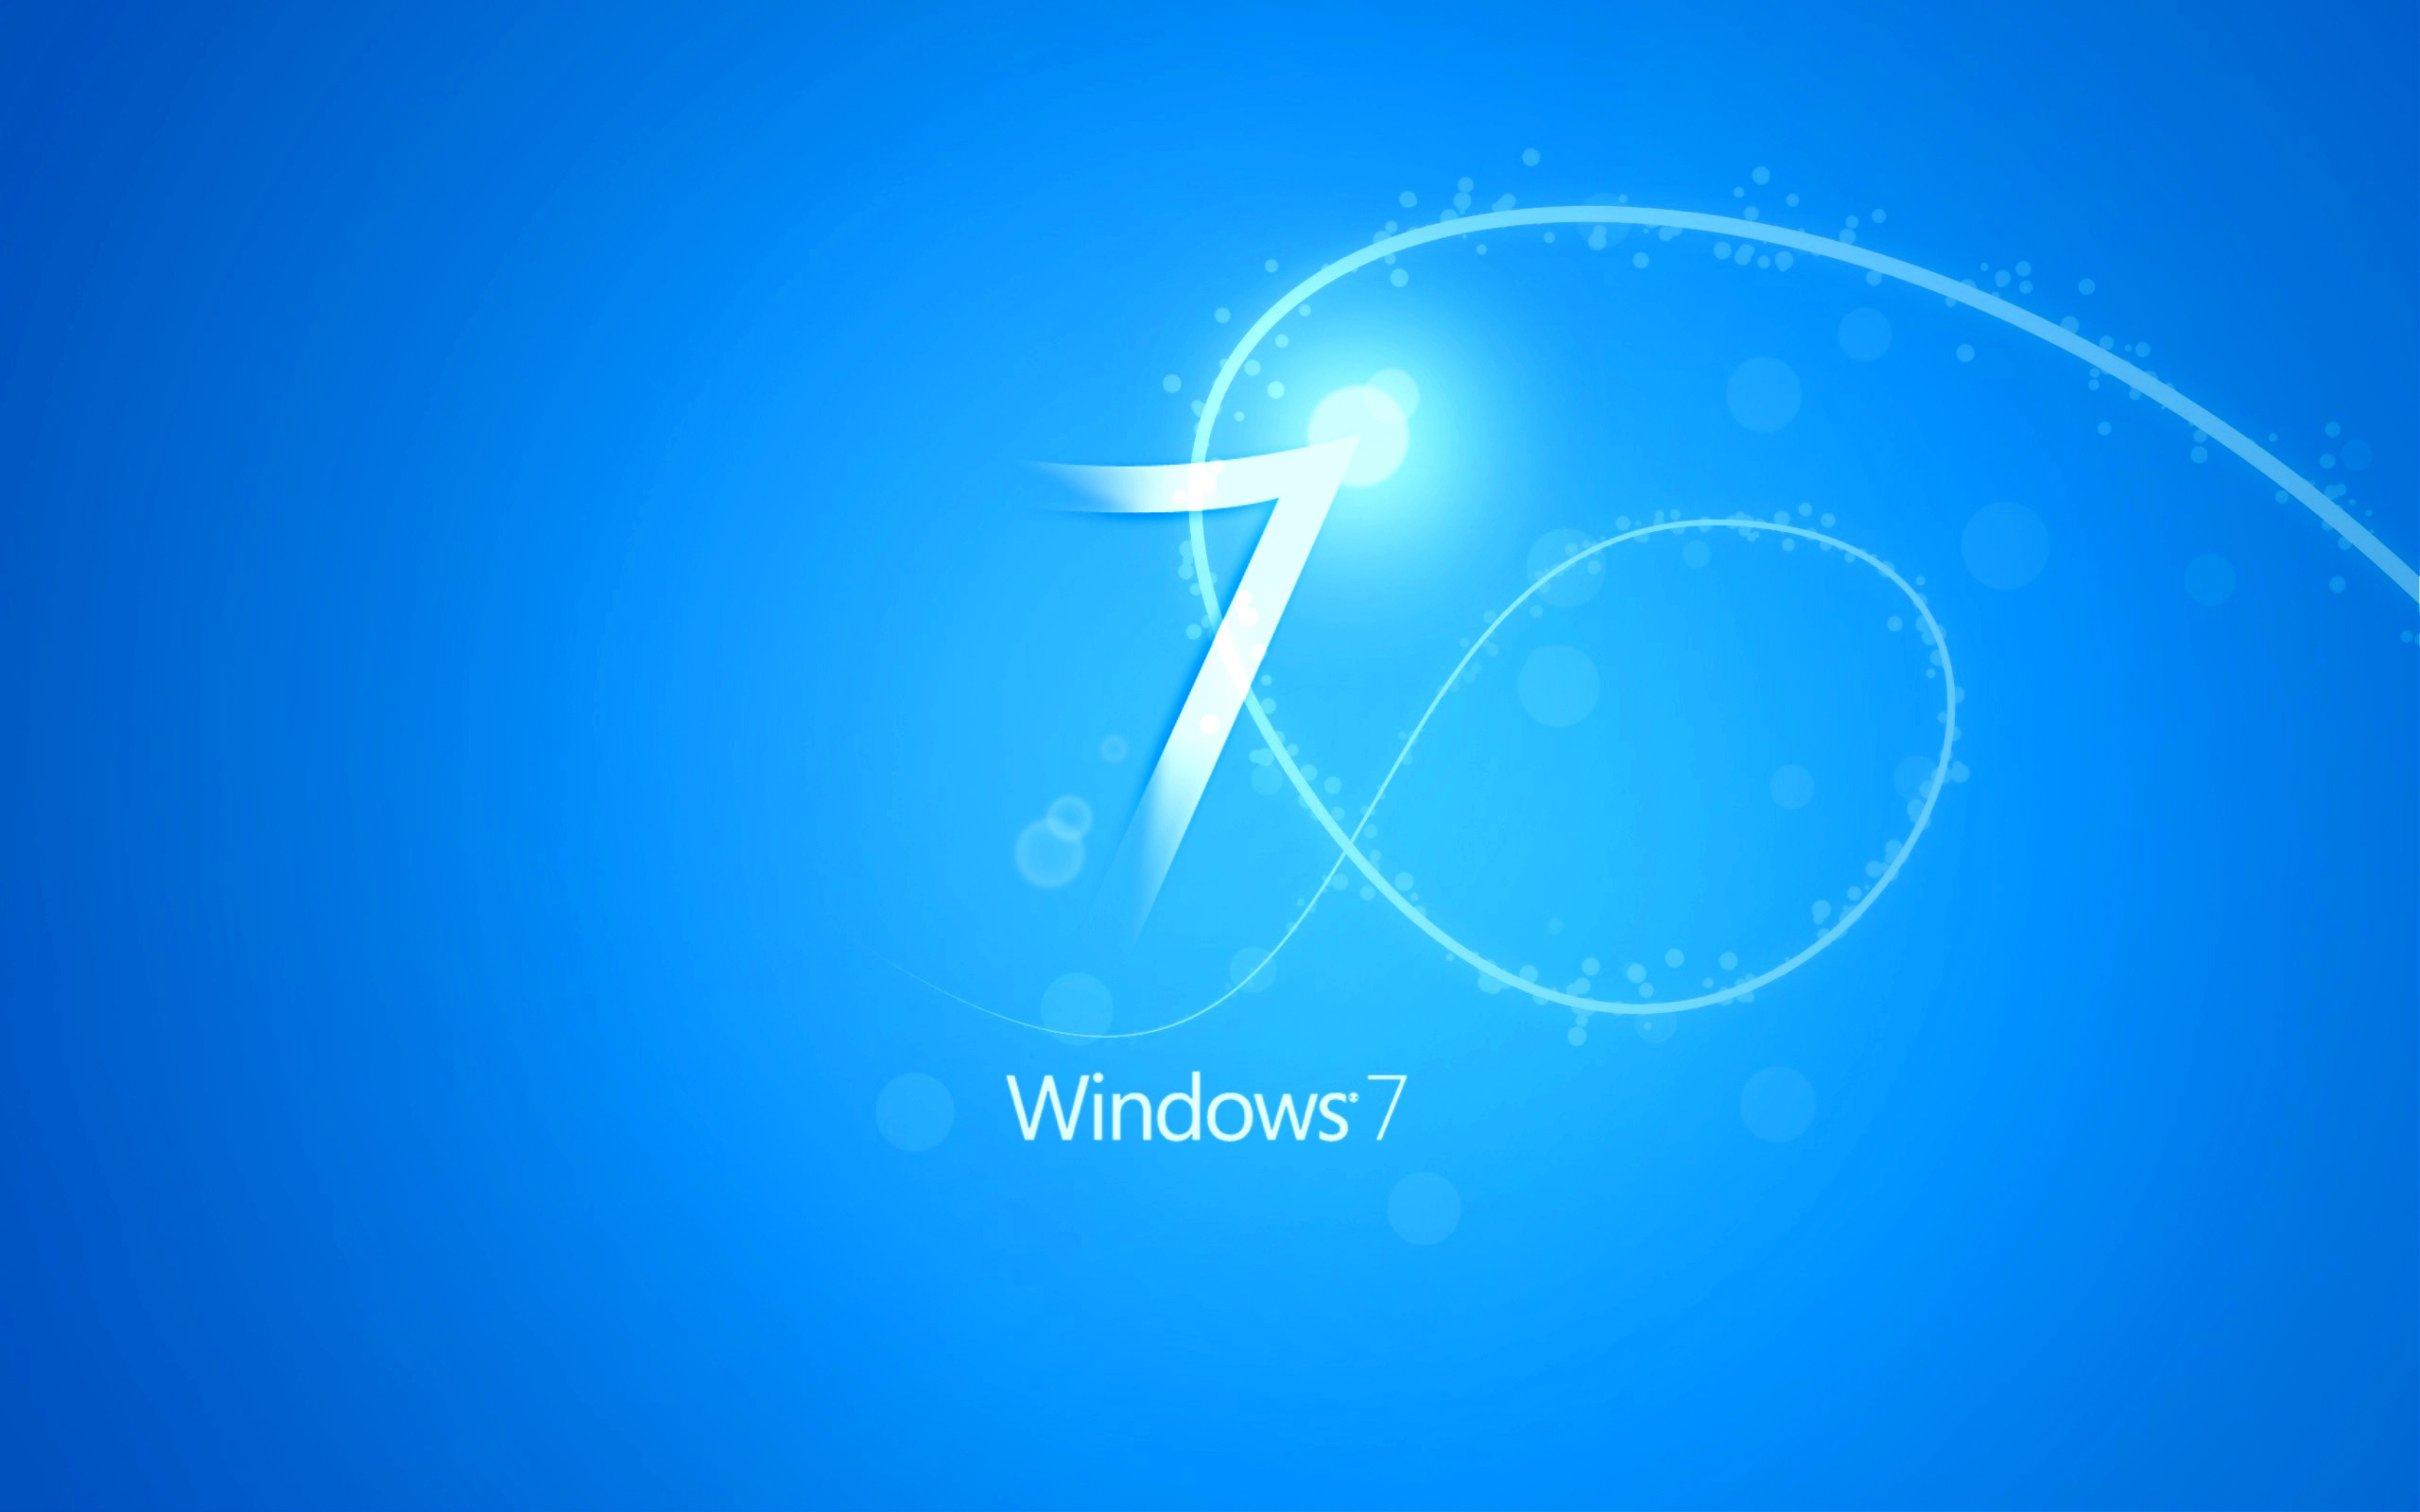 Windows 7 Wallpapers Backgrounds Hd 19